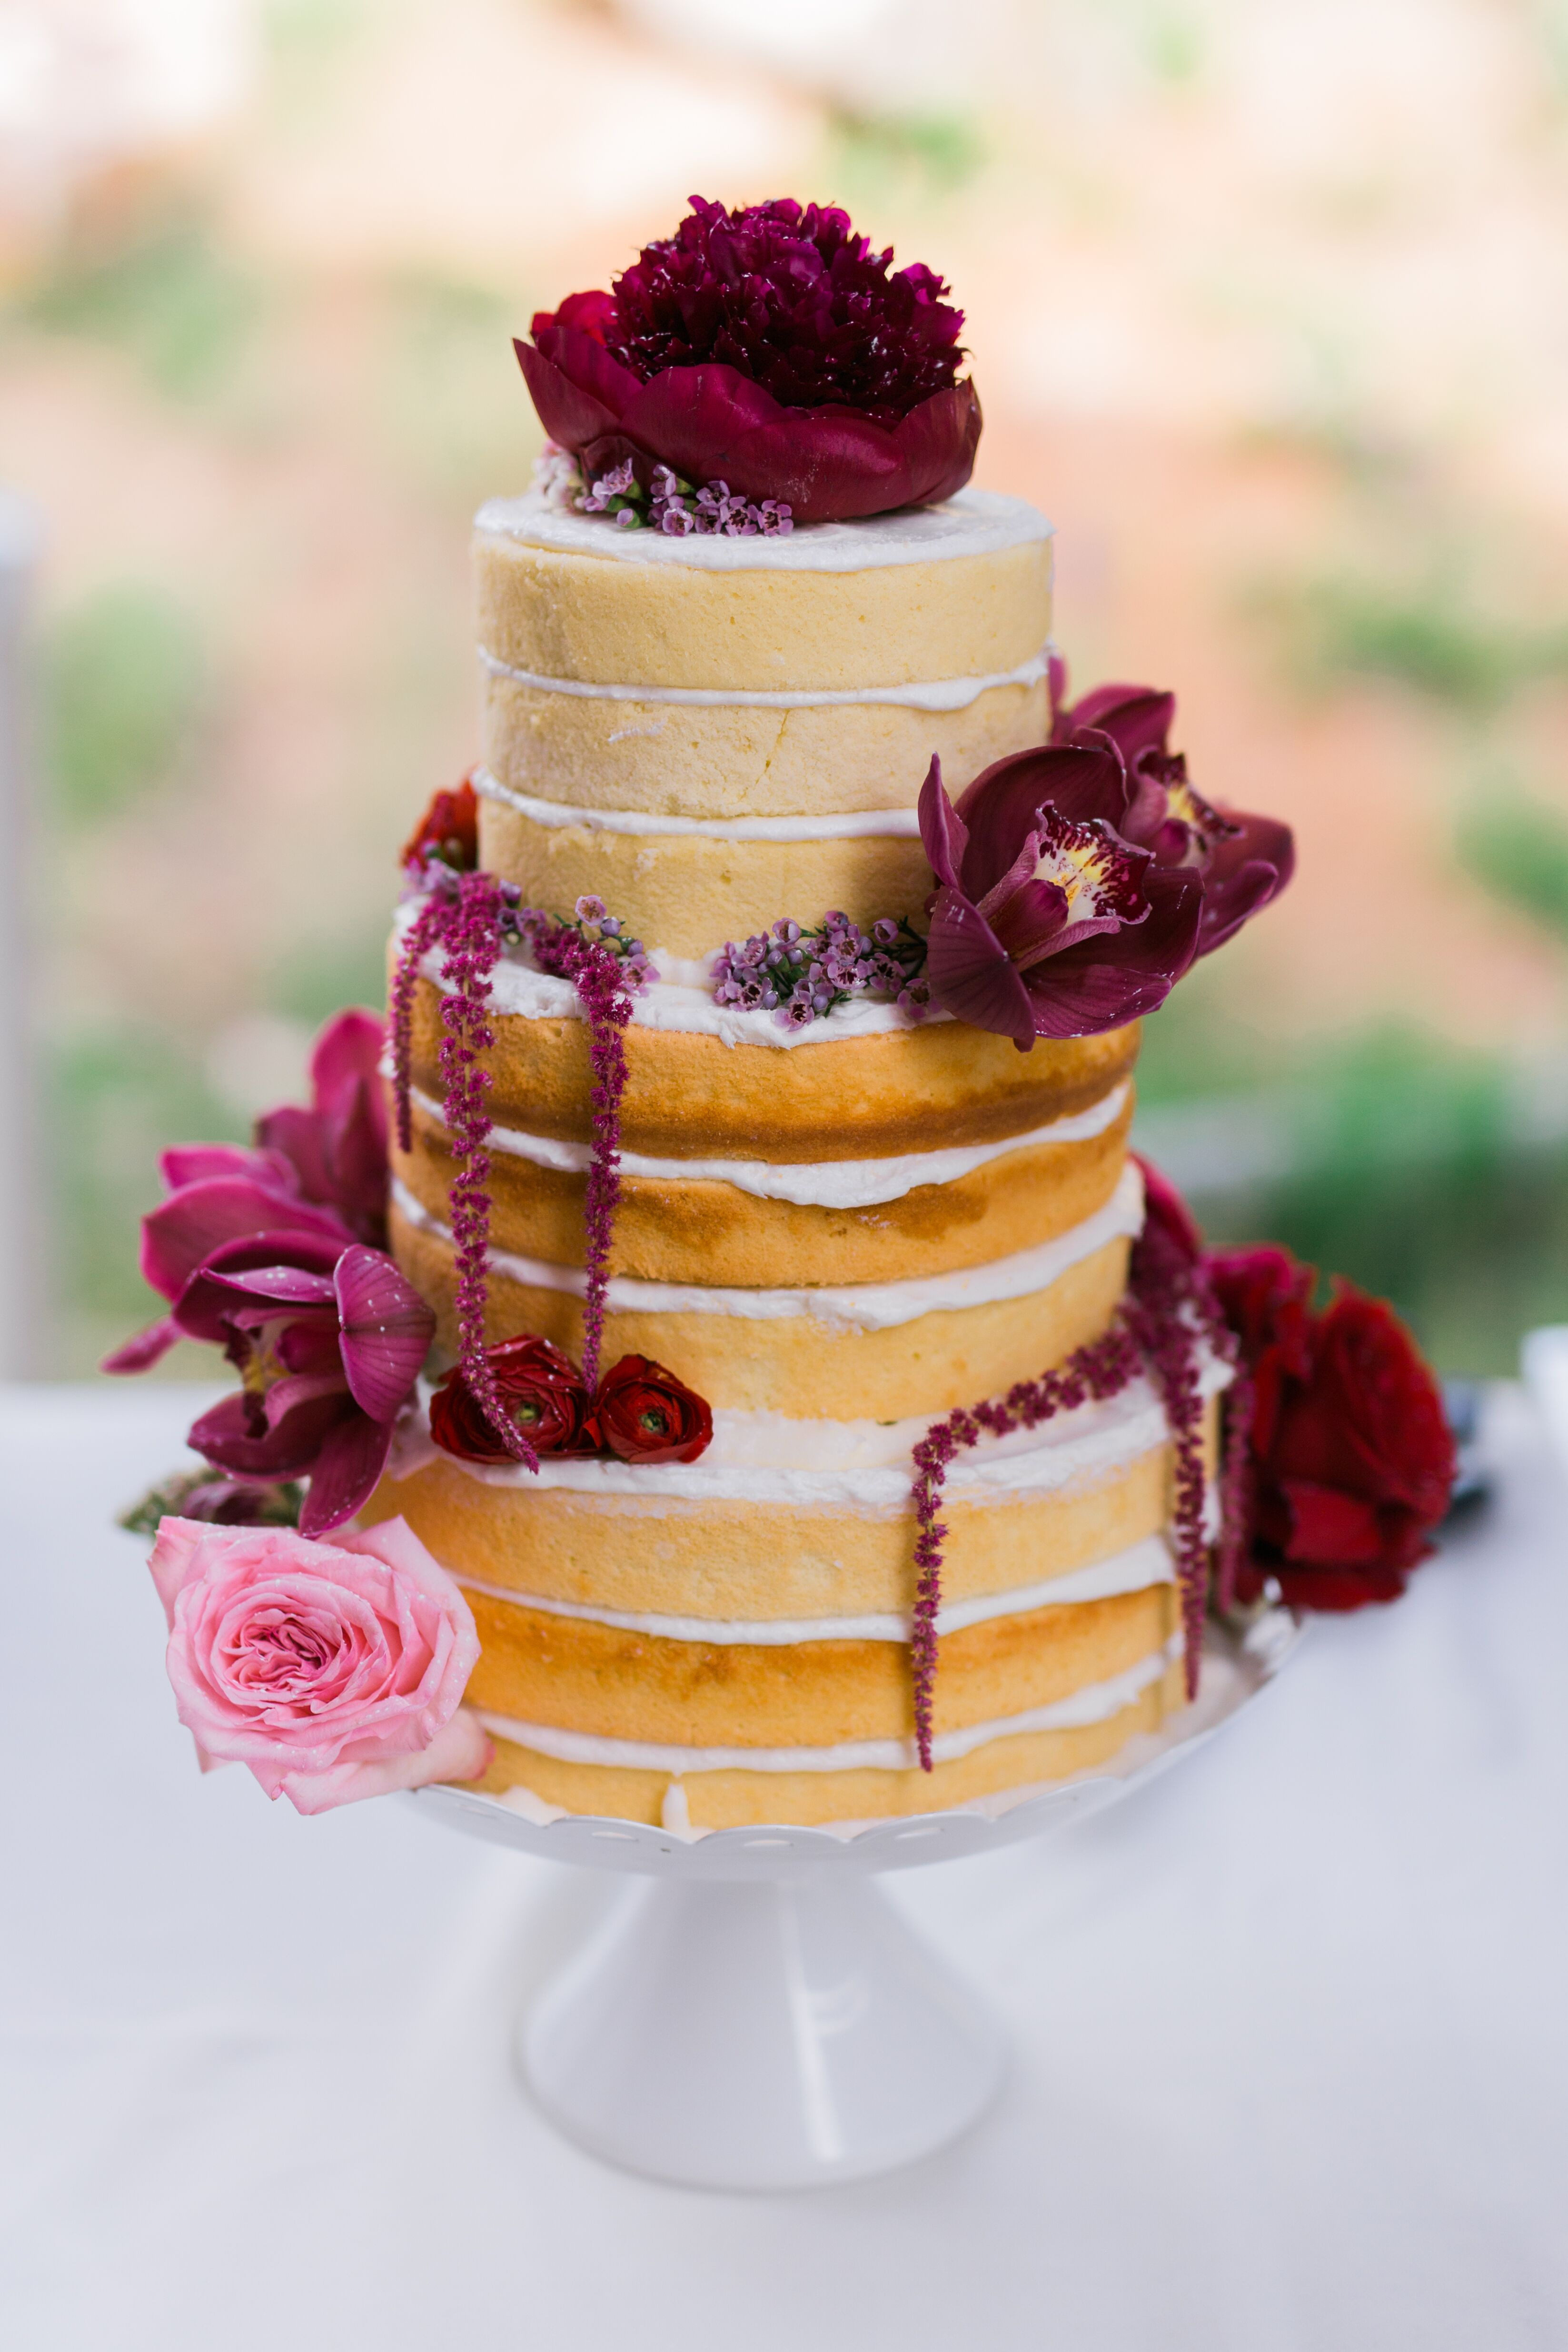 Homemade Naked Cake With Burgundy Flowers